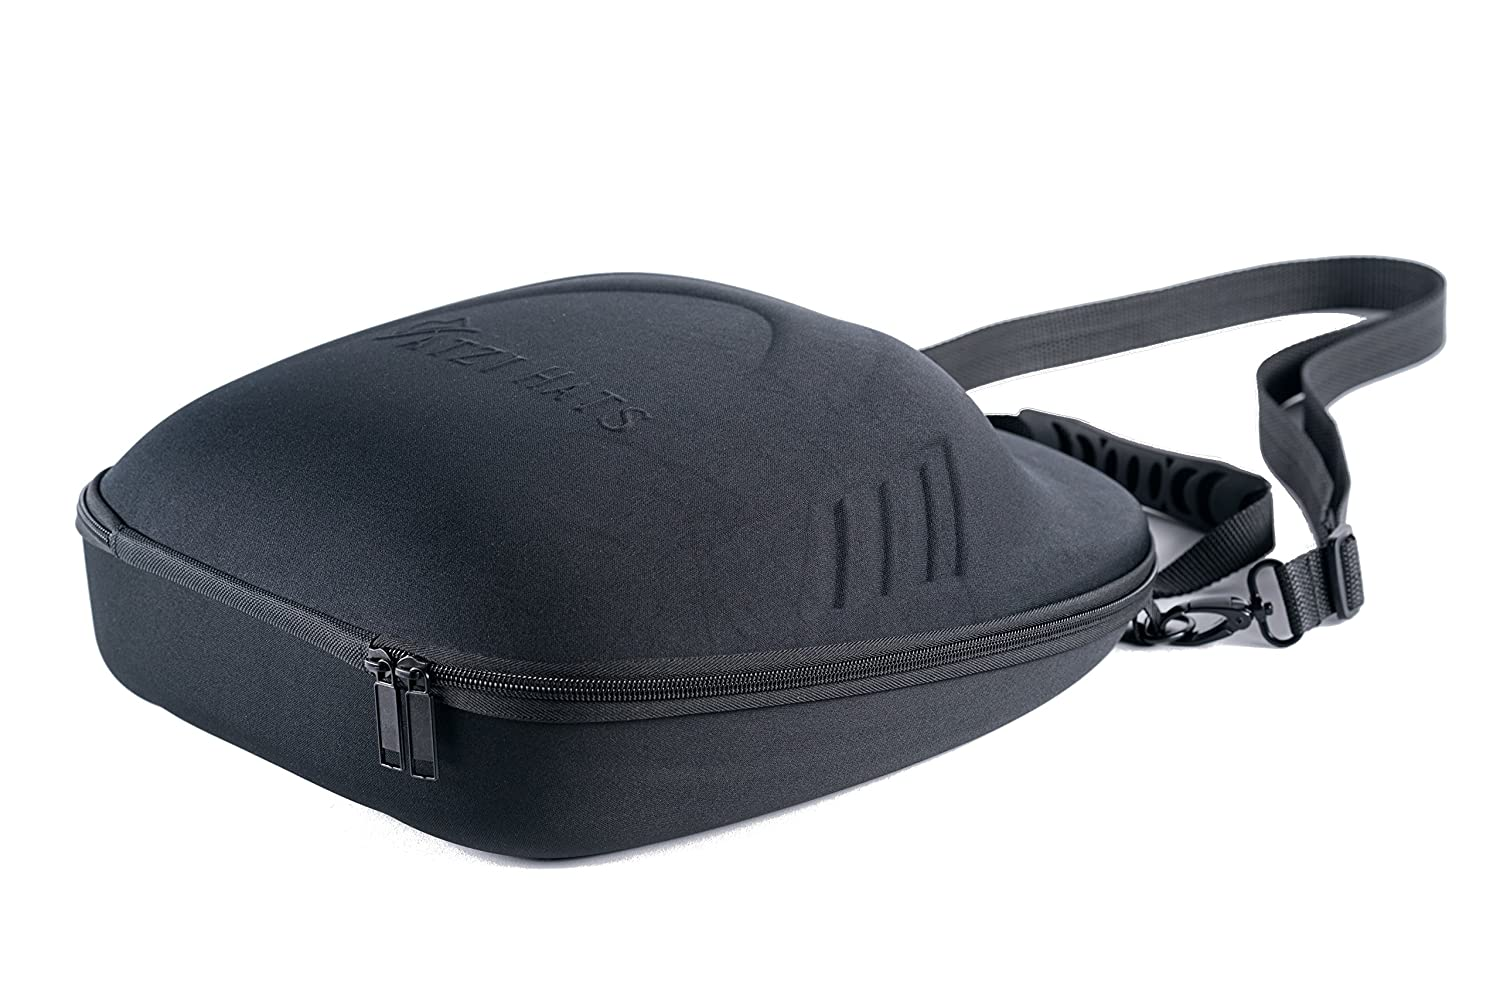 Atzi Hats Fedora Travel Case with Shoulder Strap Semi Crush Proof Hat Box   Amazon.co.uk  Clothing a1bccdf5840